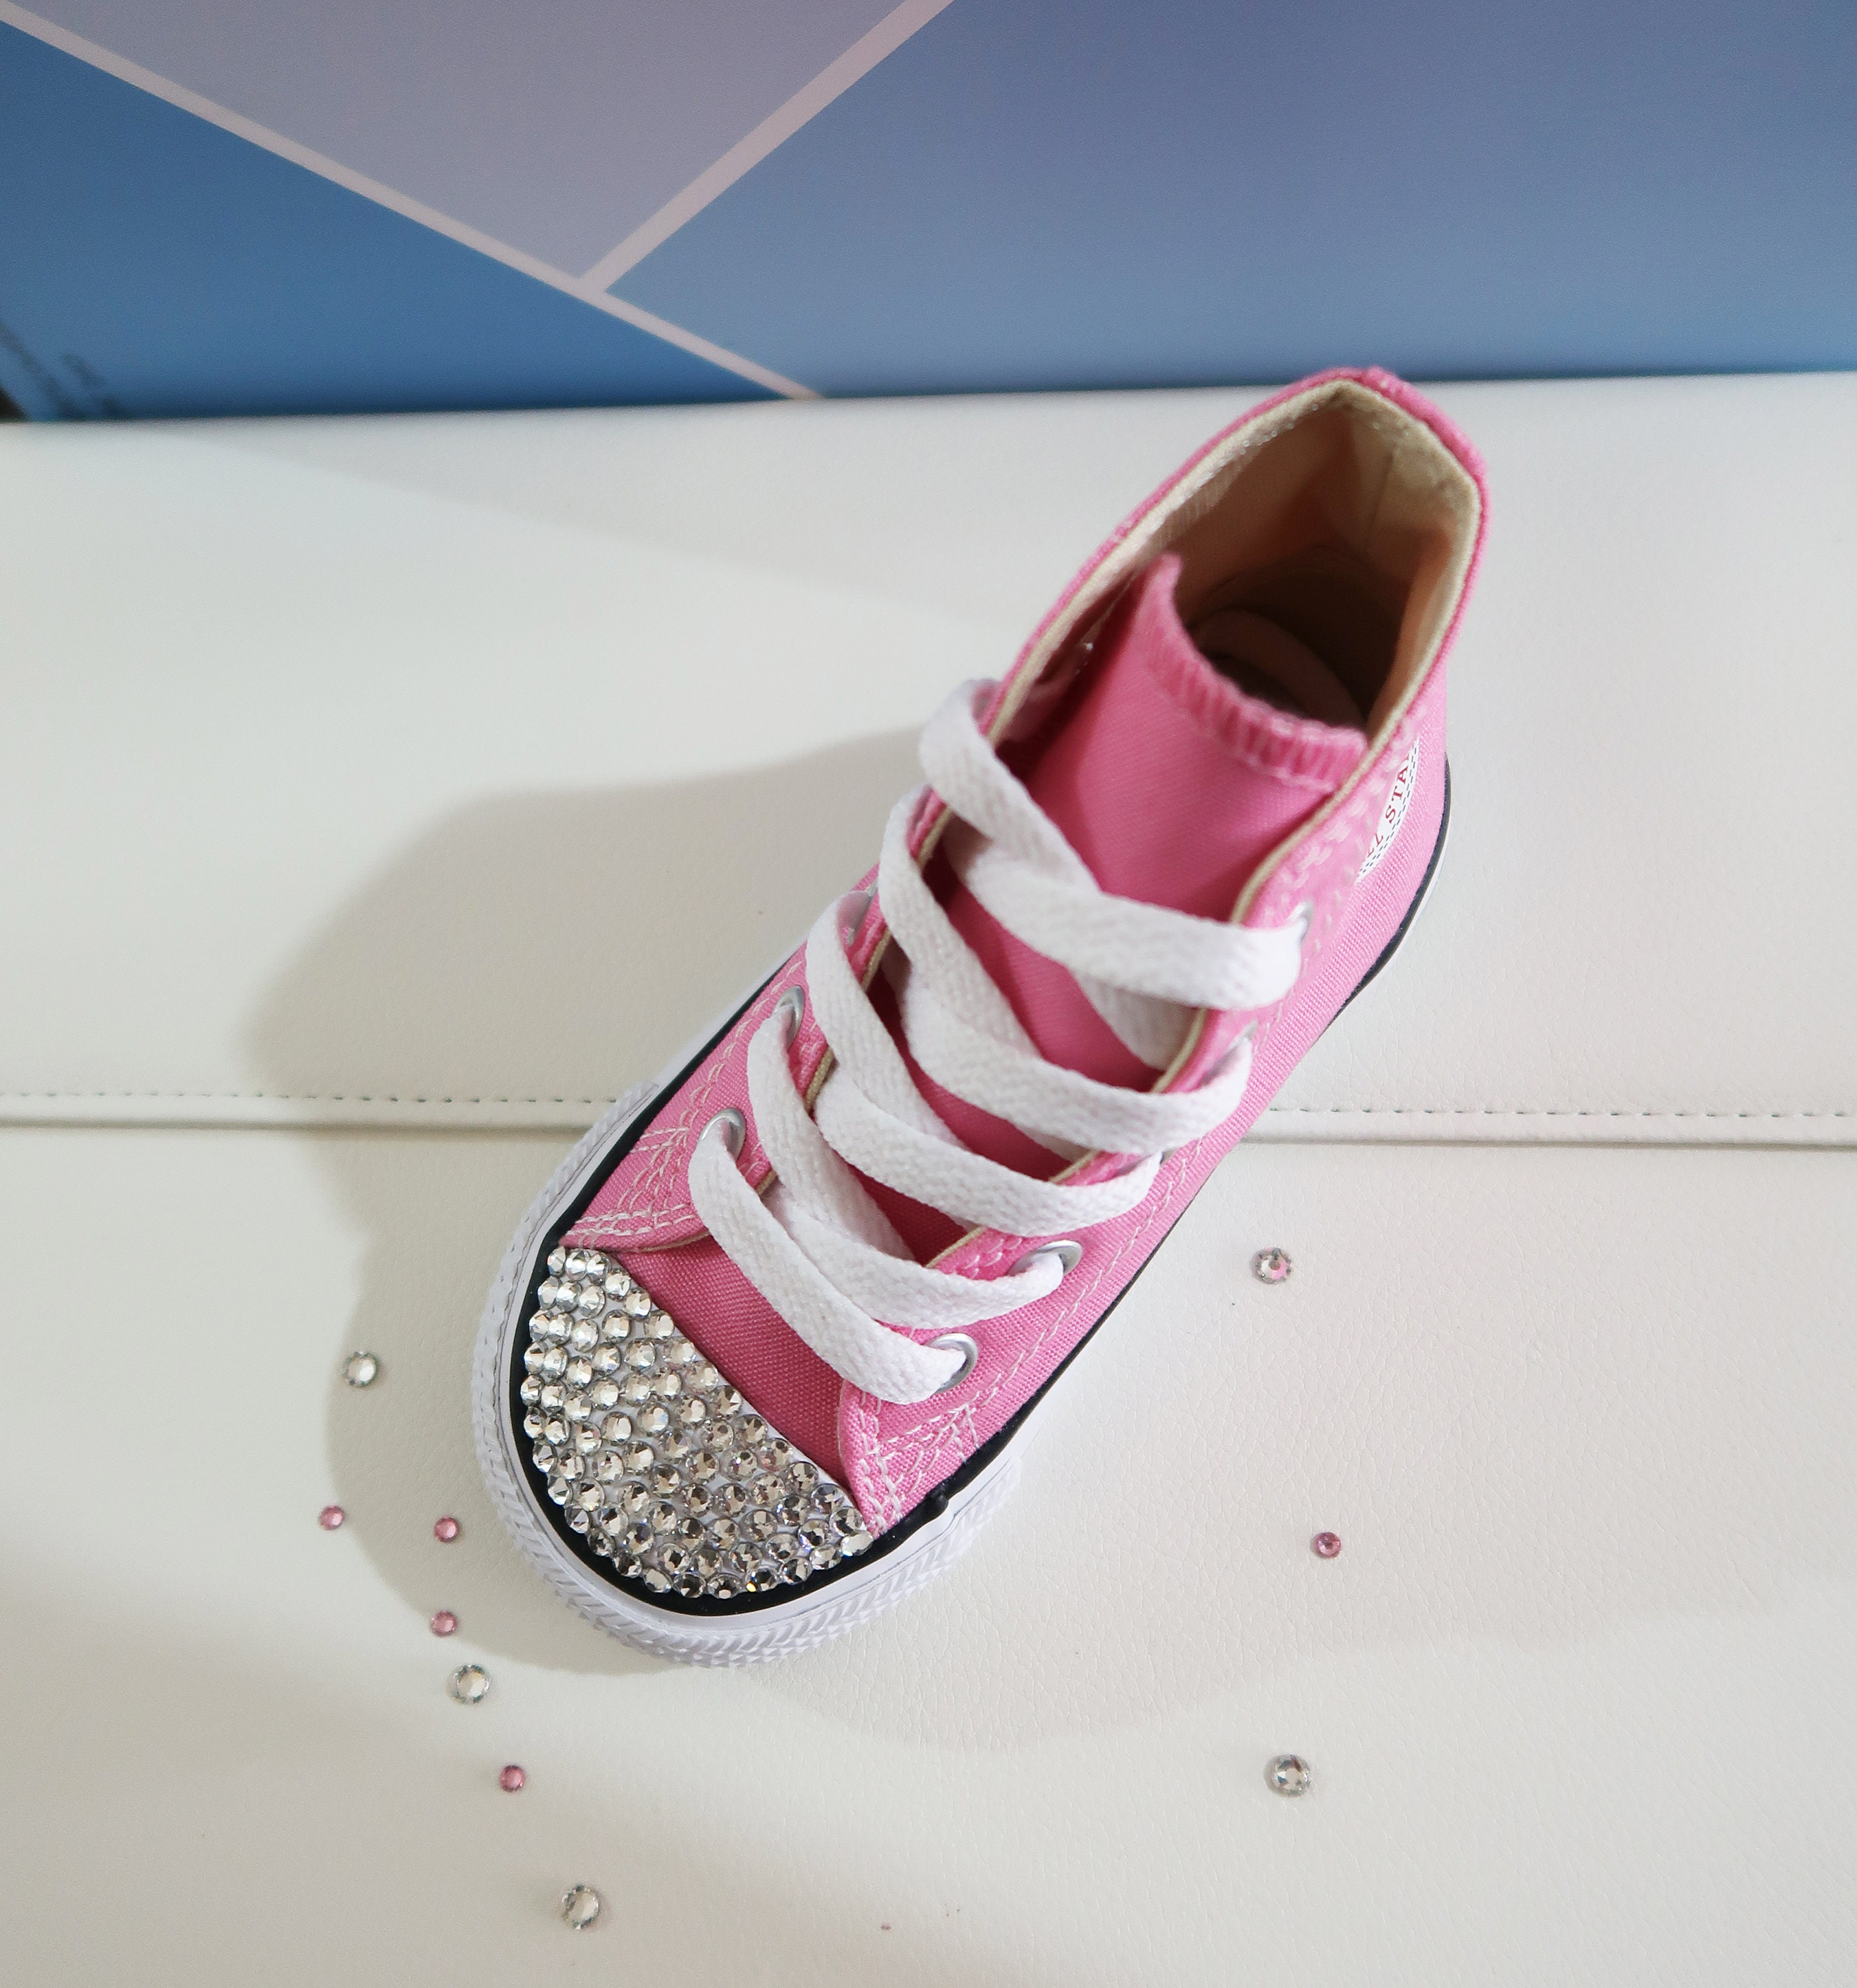 2eed108b9 LUXURY Customised Swarovski Crystal Converse® Chuck Taylor All Star High  Top Infant/Toddler Shoe Embellished With Finest Swarovski Crystals. 1